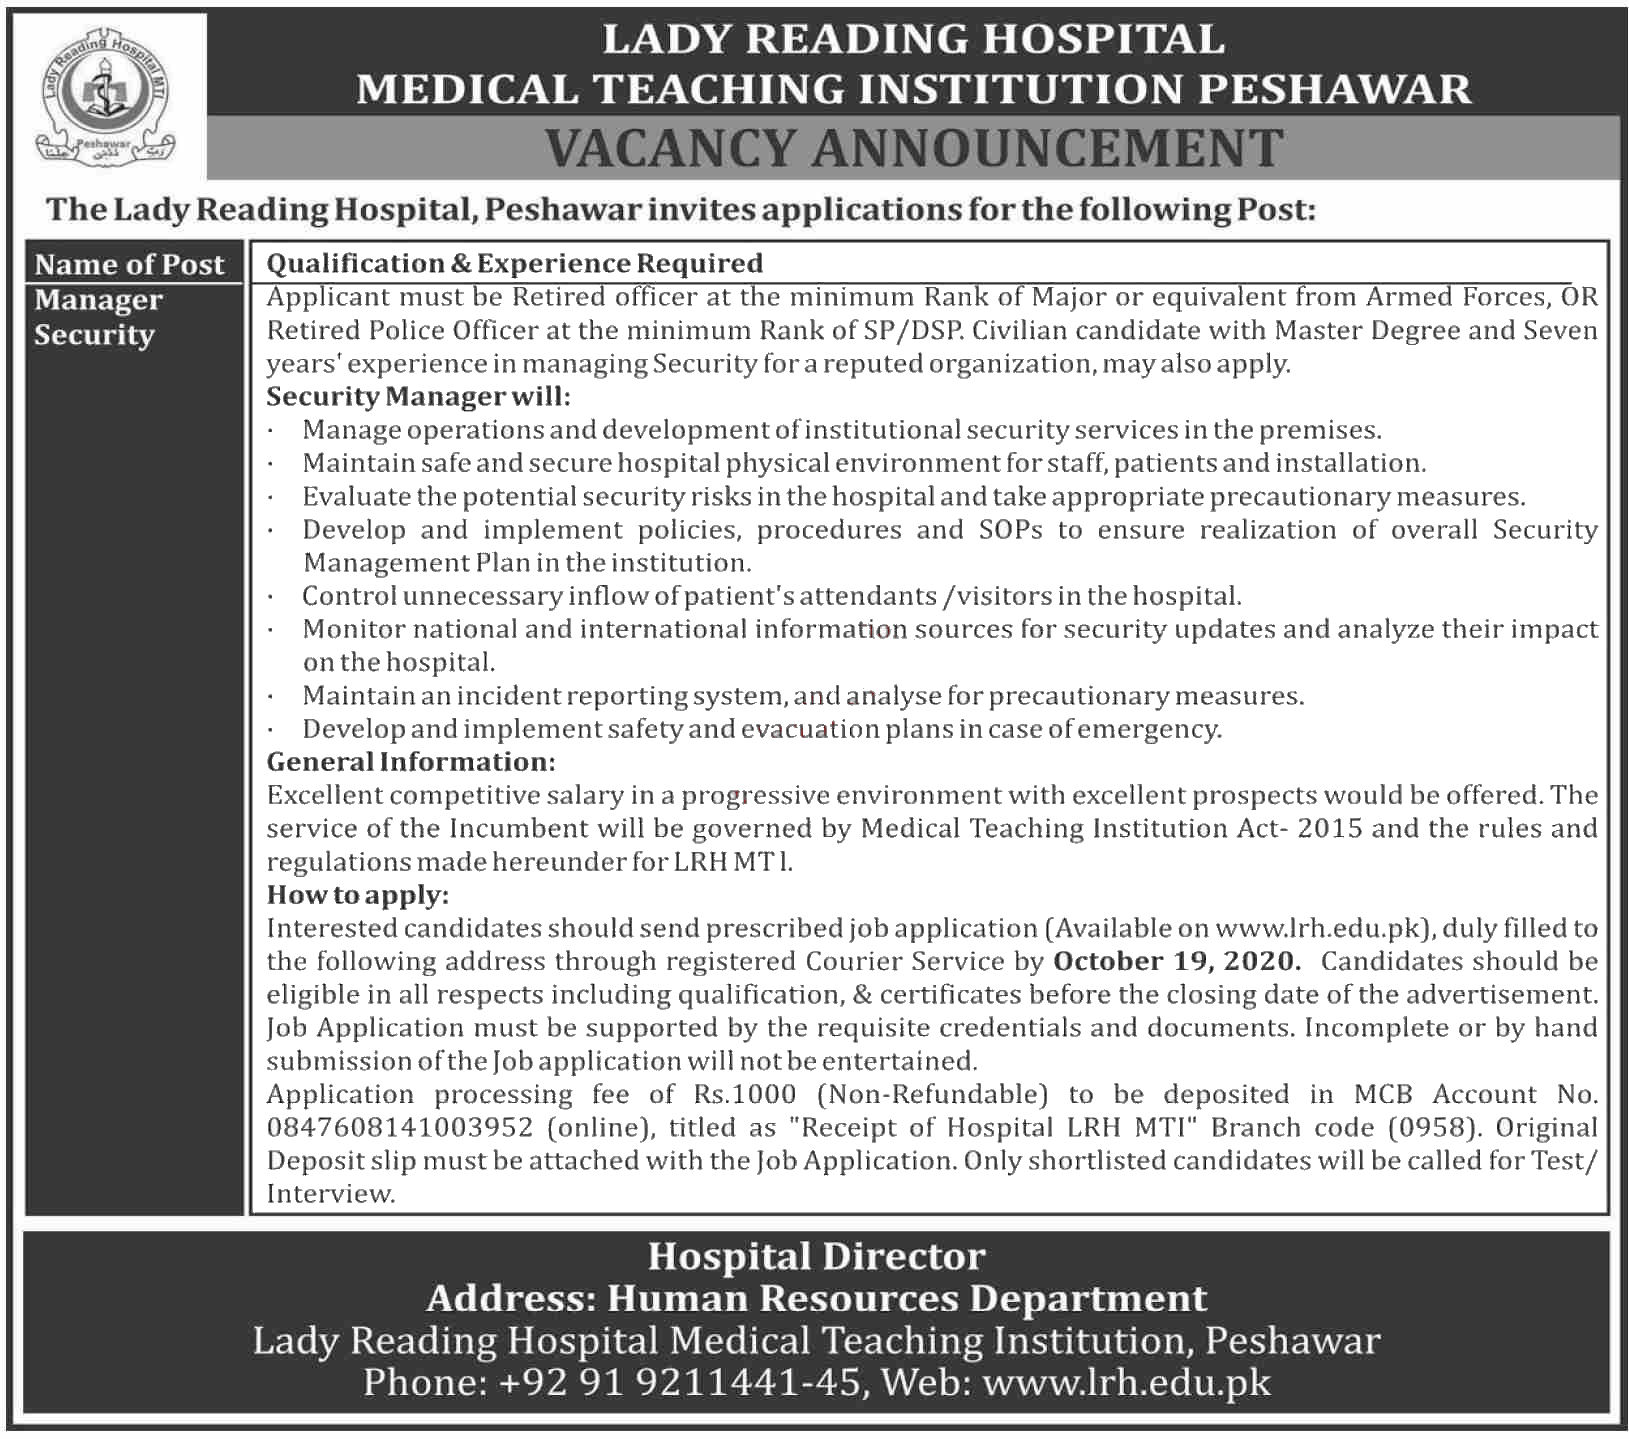 Jobs in Manager Security in Lady Reading Hospital LRH MTI 04 October, 2020